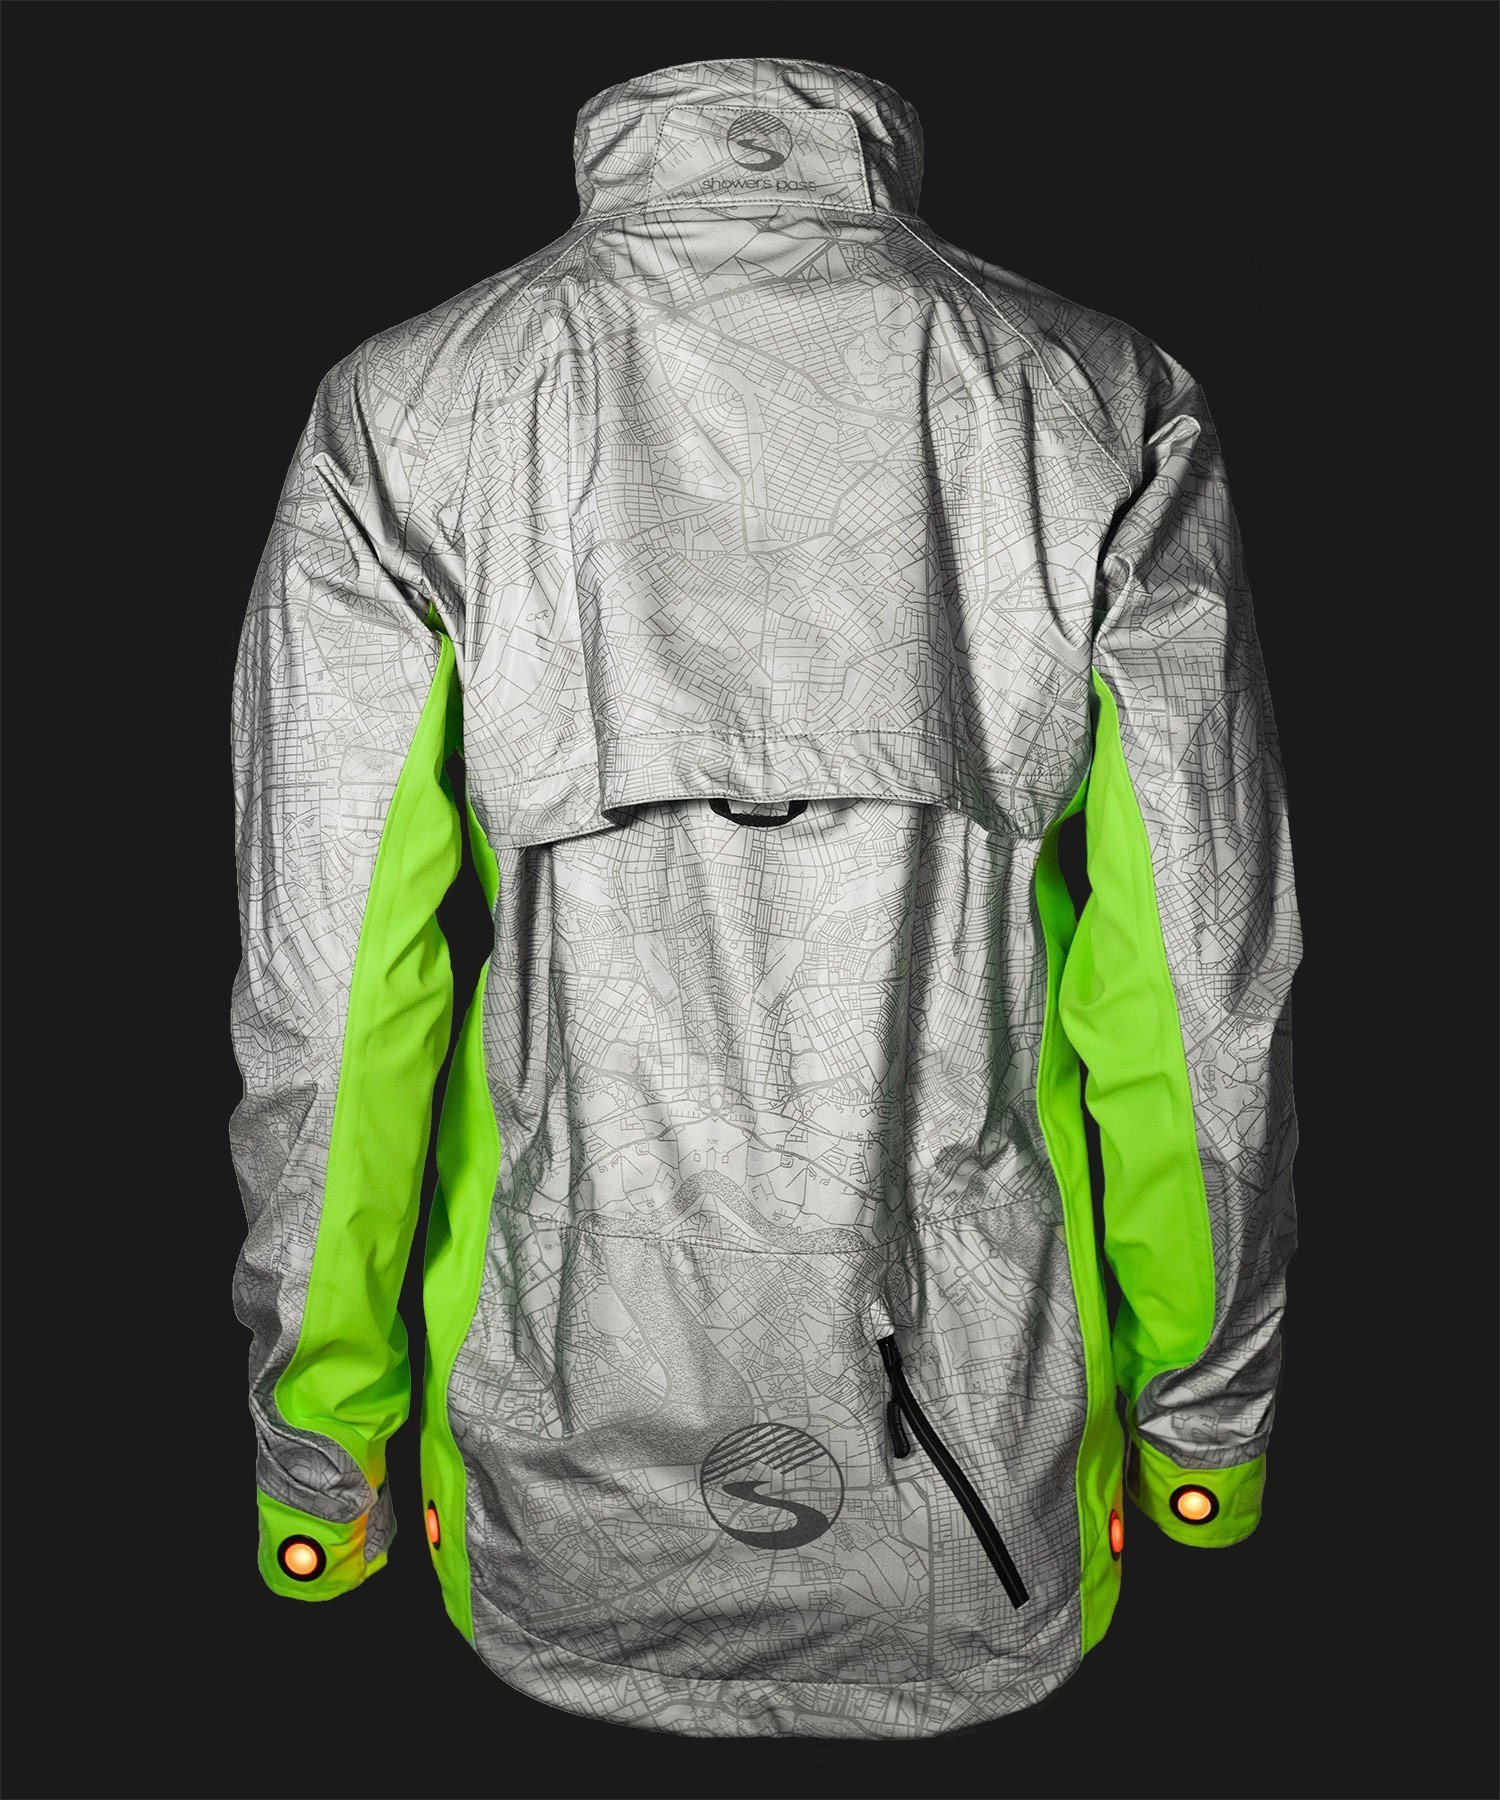 Women's Hi-Vis Torch Jacket - Reflective Silver/Neon Green by Showers Pass